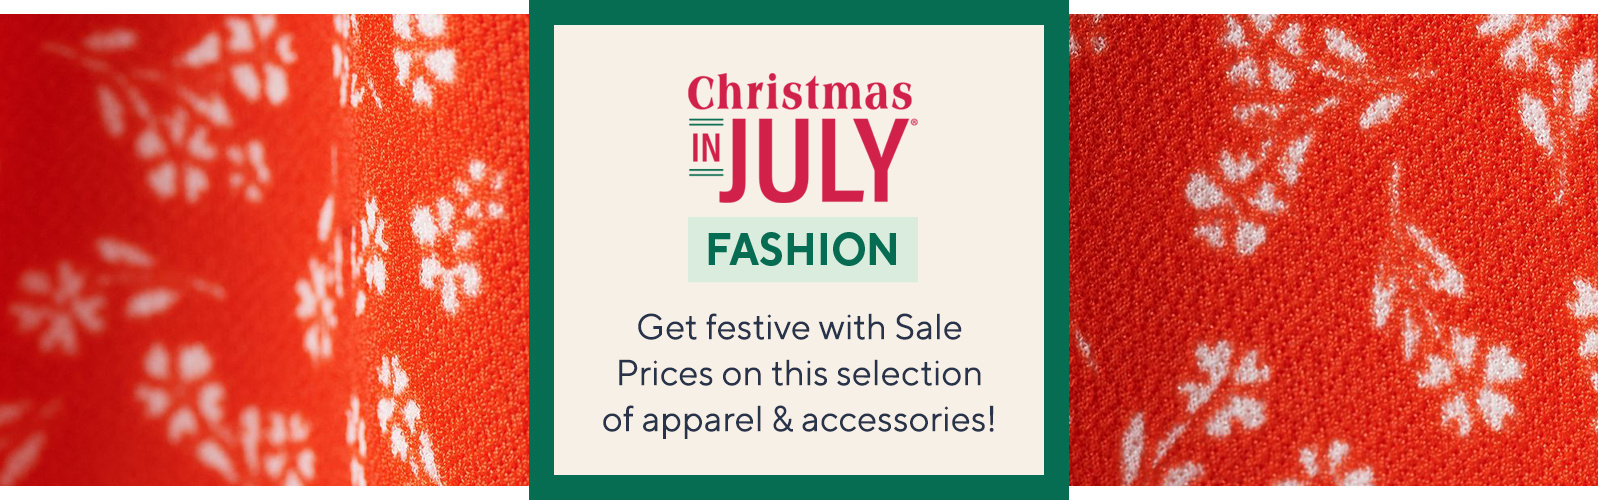 Qvc Schedule Christmas In July 2021 Christmas In July Sale Prices On Fashions Accessories Qvc Com